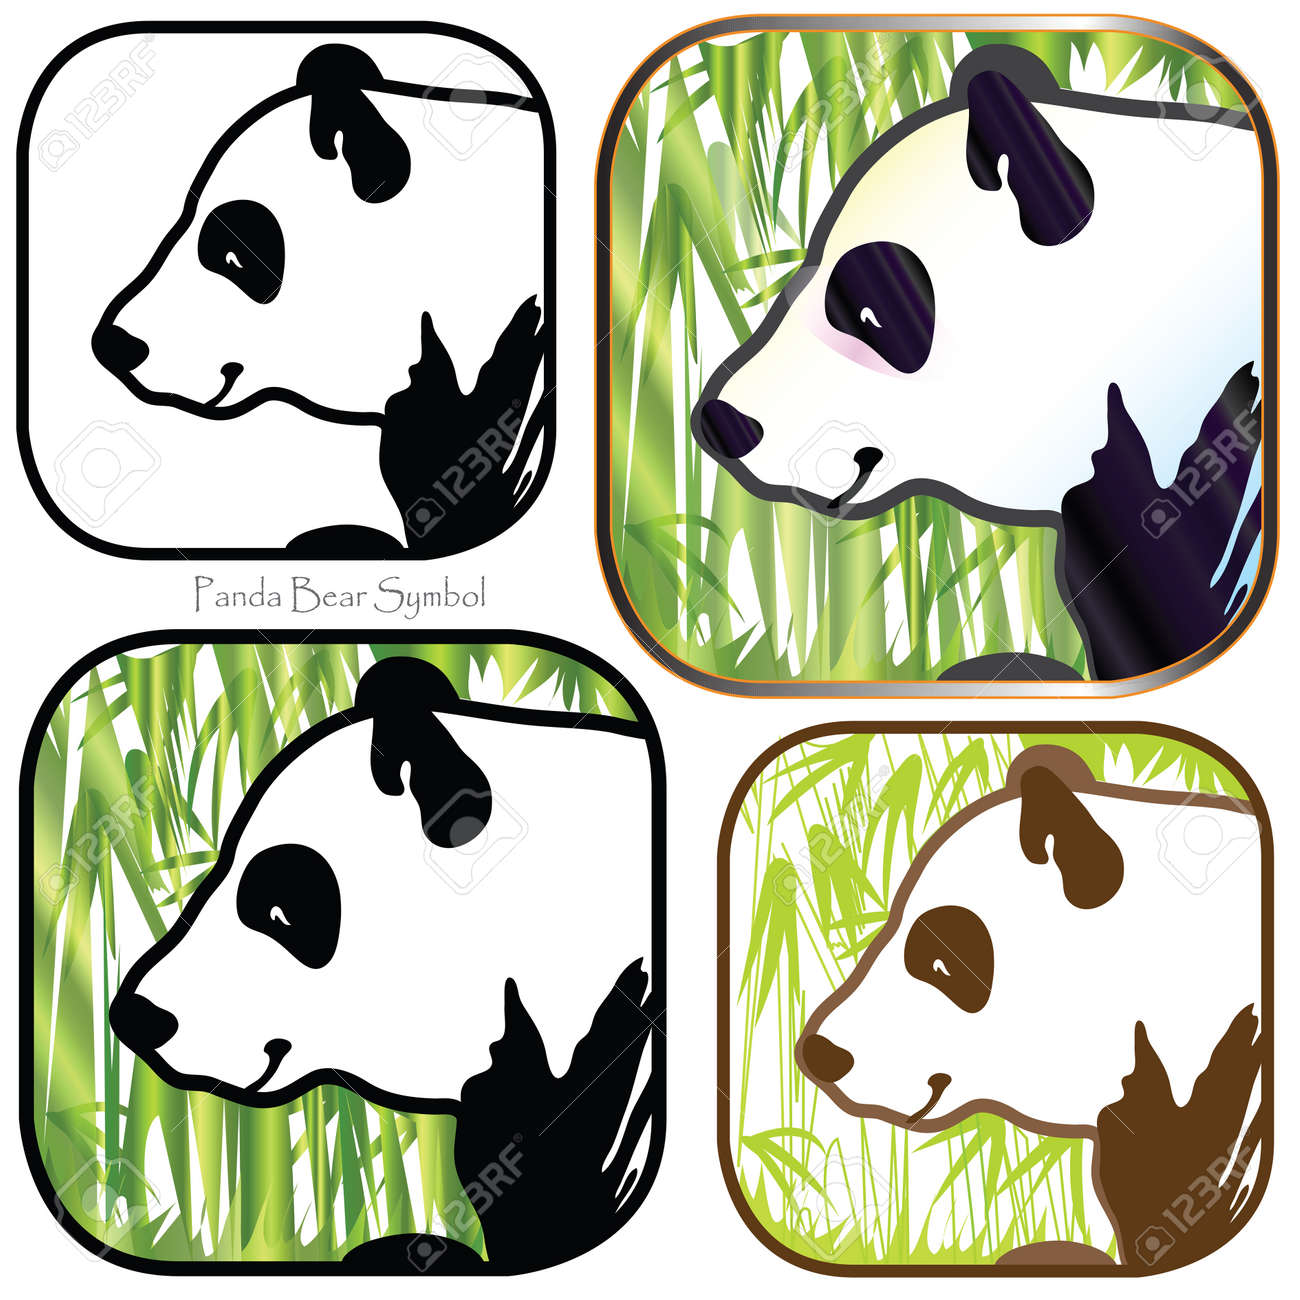 Panda Bear Symbol Cartoon Graphic Design One Color Out Line To Full Colors Fantasy You Can